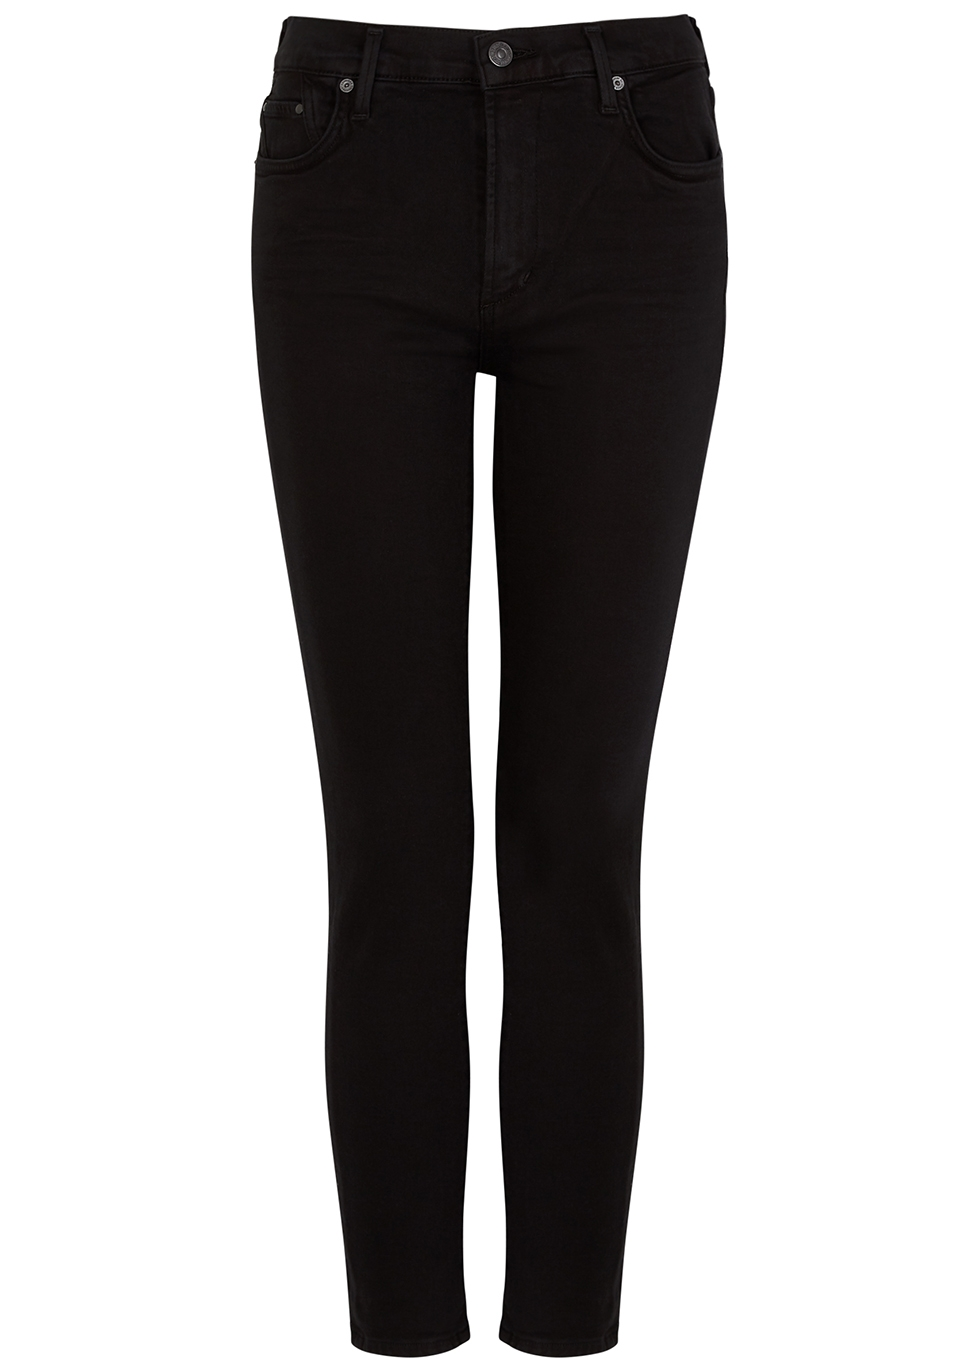 Citizens of Humanity Rocket Sculpt black cropped skinny